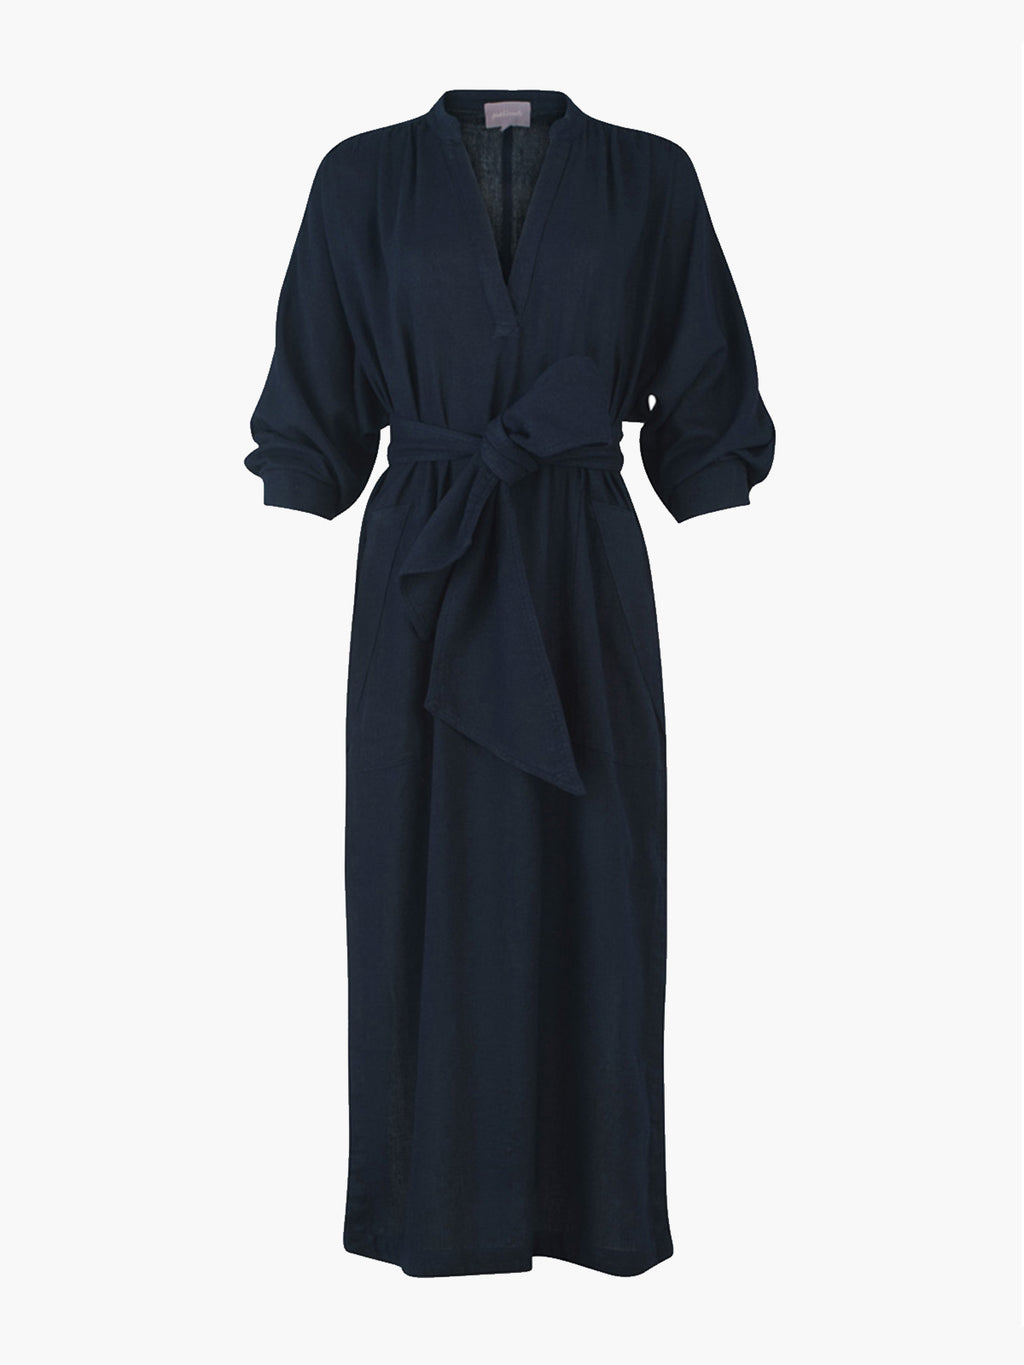 Celian Dress | Navy